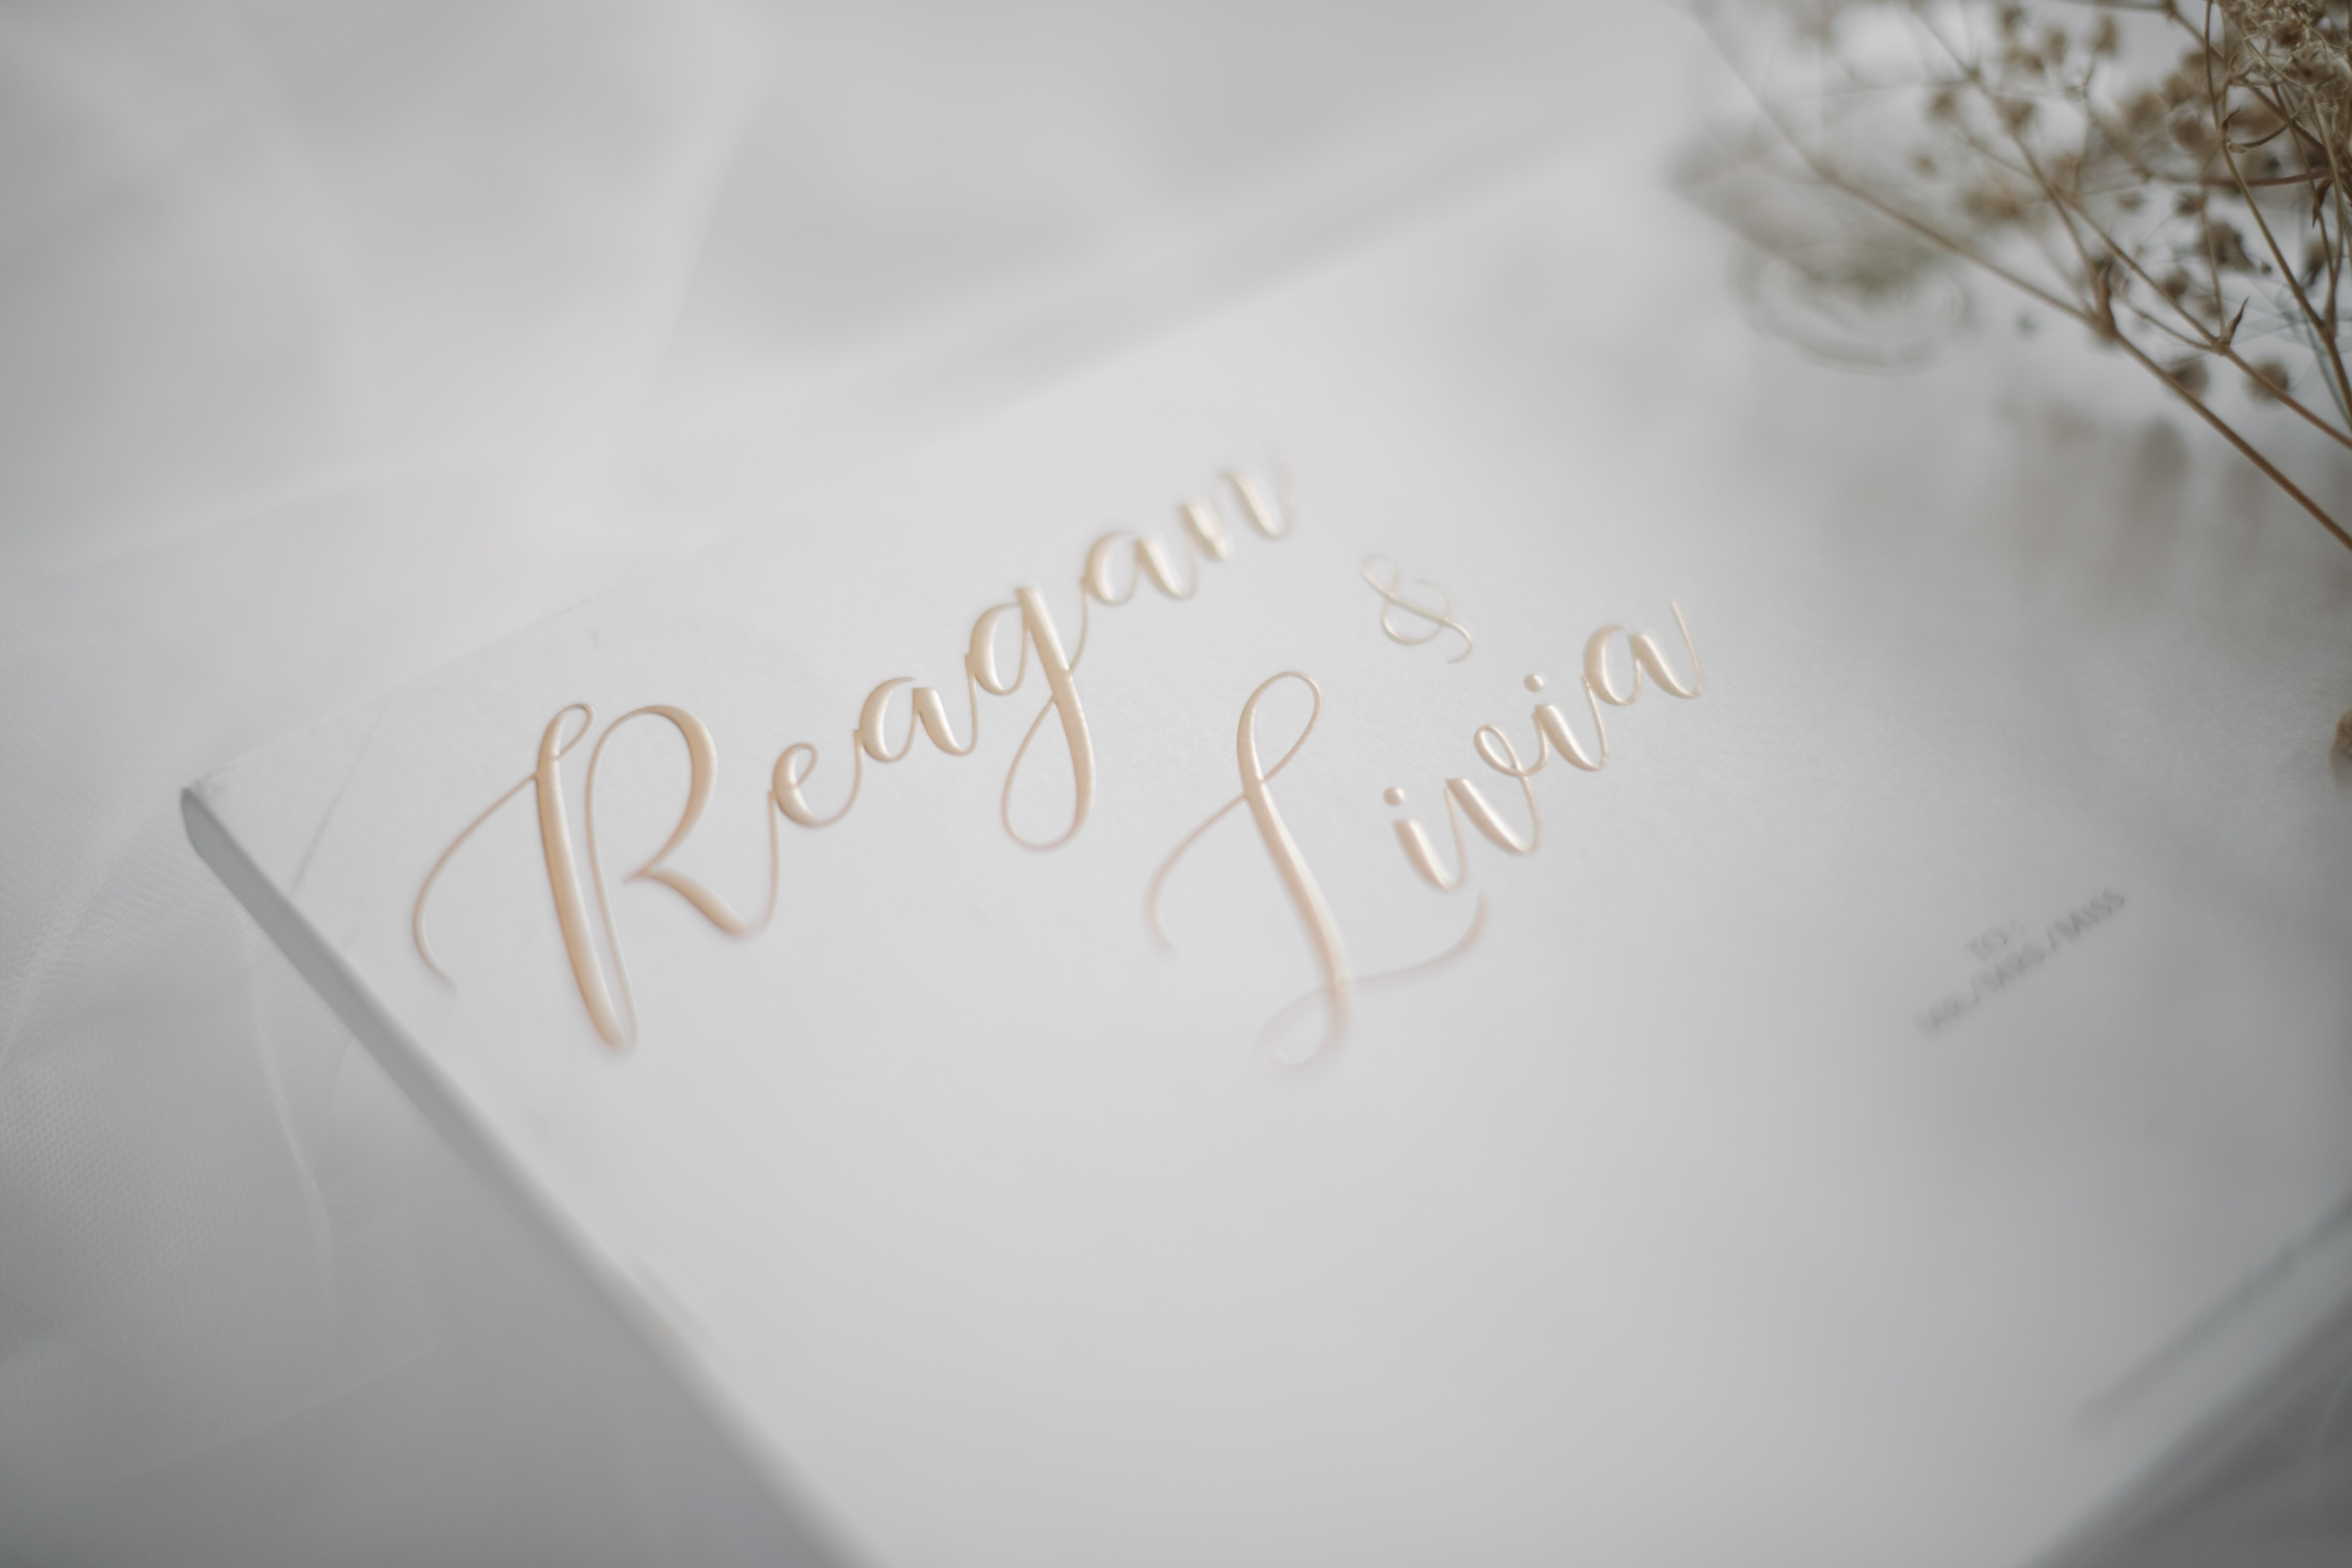 livia-reagan-wedding-raffles-jakarta-pyara-photo-gejoo 1.jpg